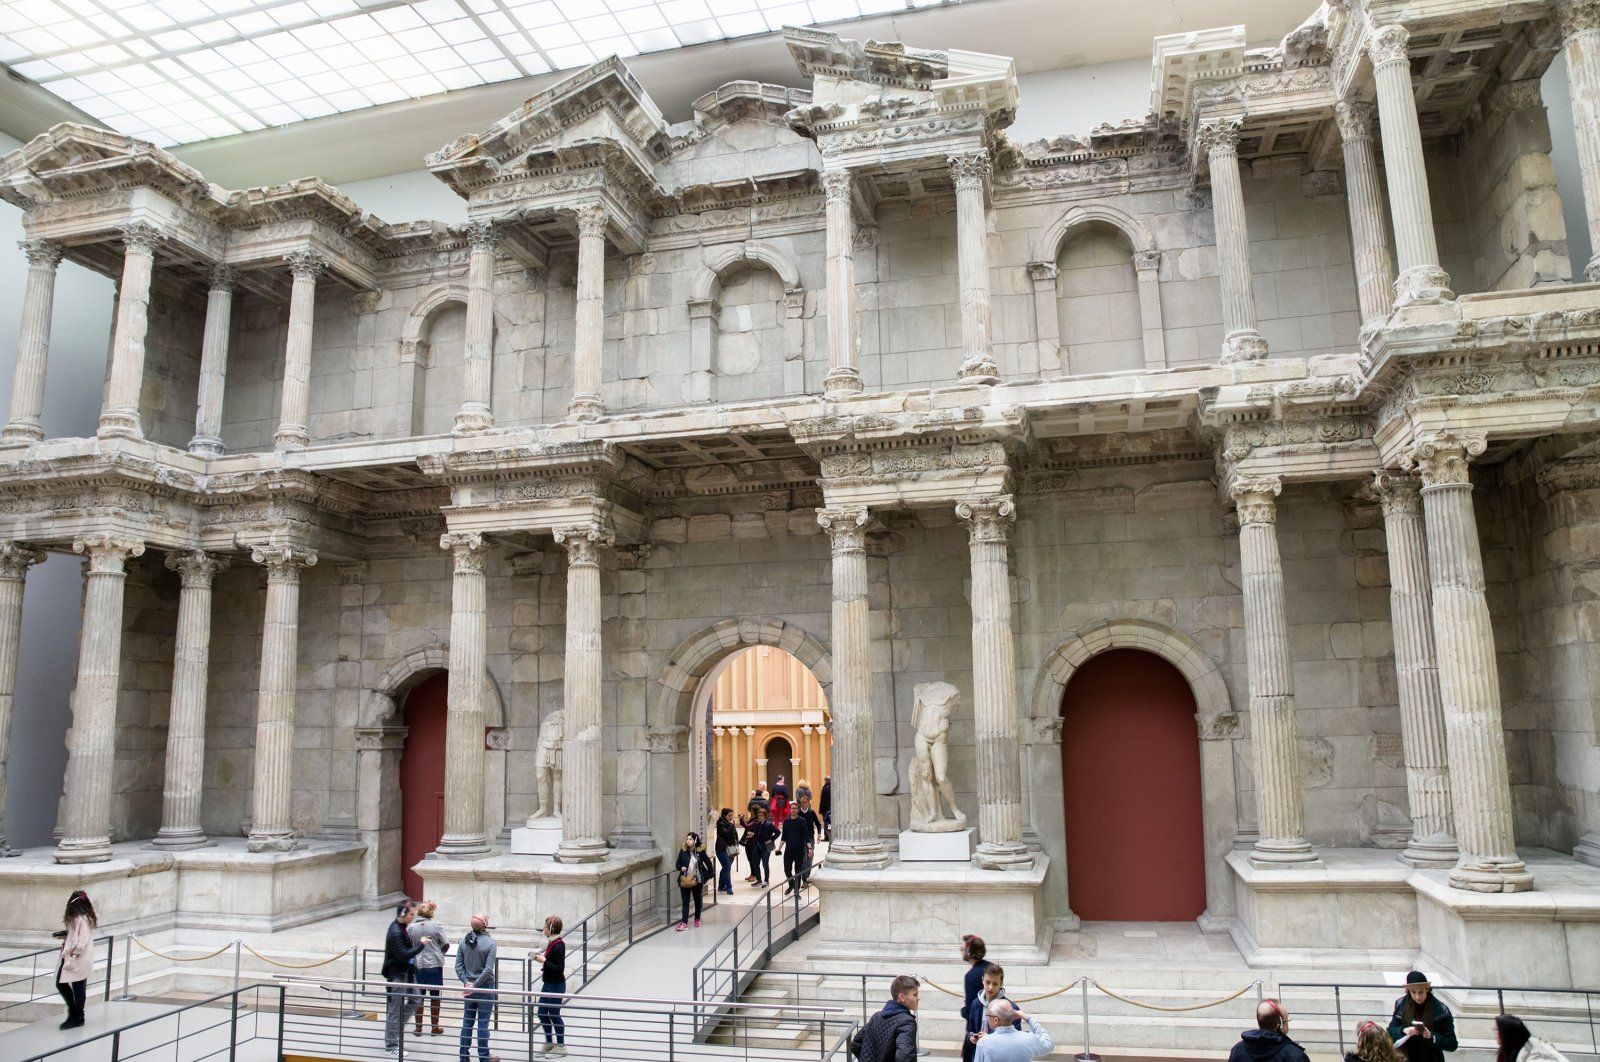 A view of the market gate of the ancient city of Miletus, located in western Turkey, in the Pergamon Museum, Berlin, Germany, April 7, 2017. (SHUTTERSTOCK PHOTO)